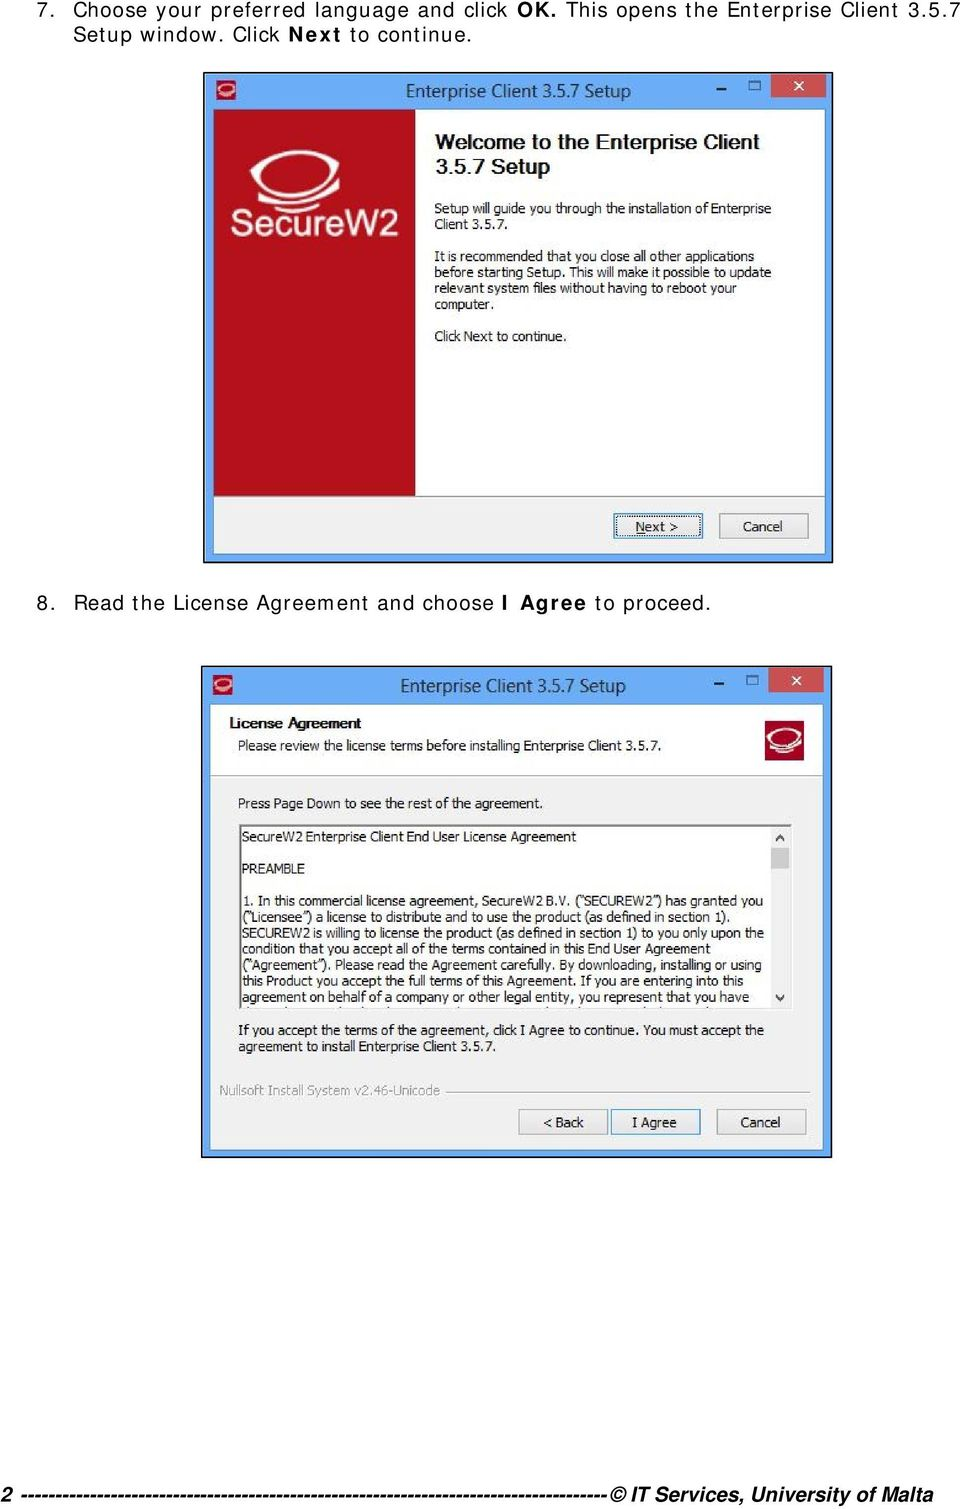 8. Read the License Agreement and choose I Agree to proceed.